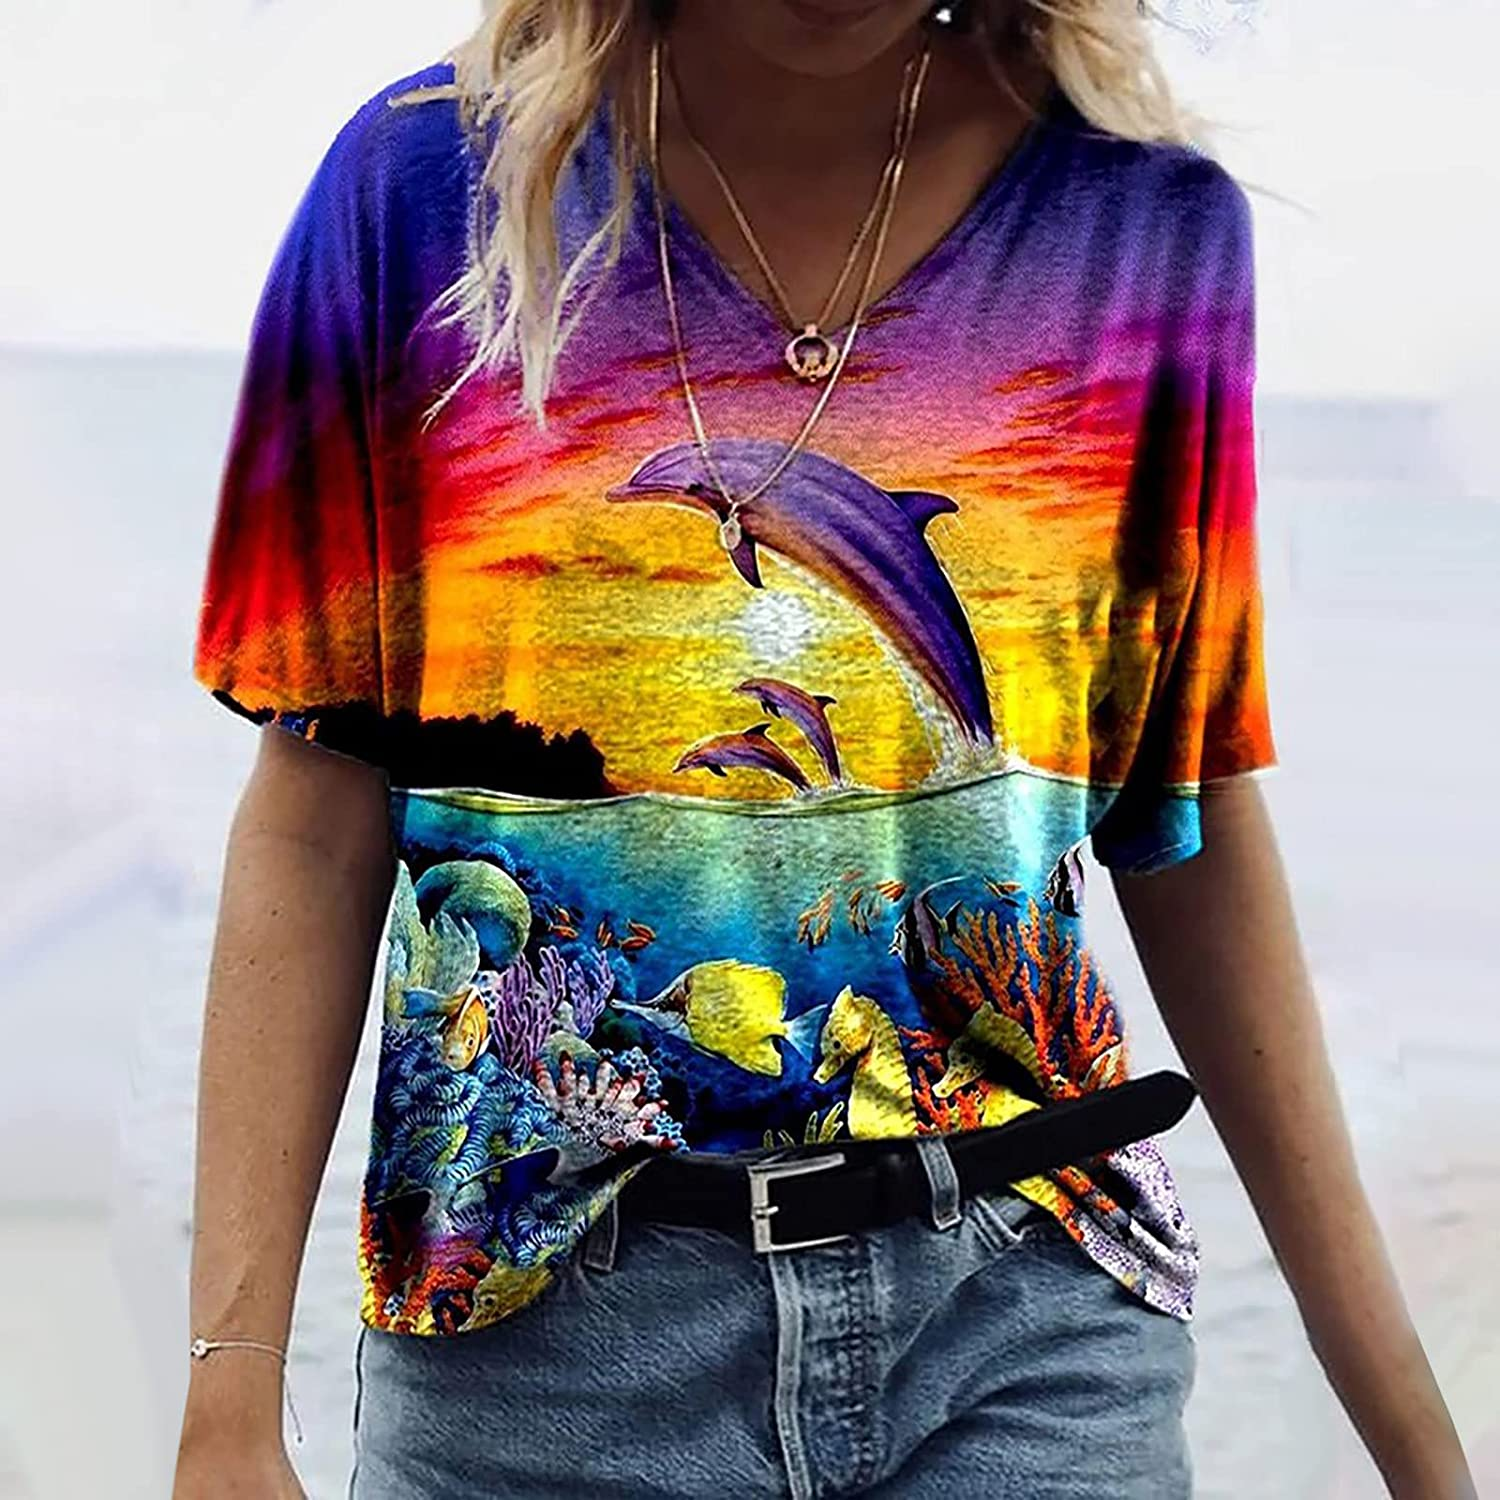 3D Printed T-Shirts for Women Short Sleeve Tops Colorful Graphic Tees Cute V-Neck Blouses Triple Color Tunic